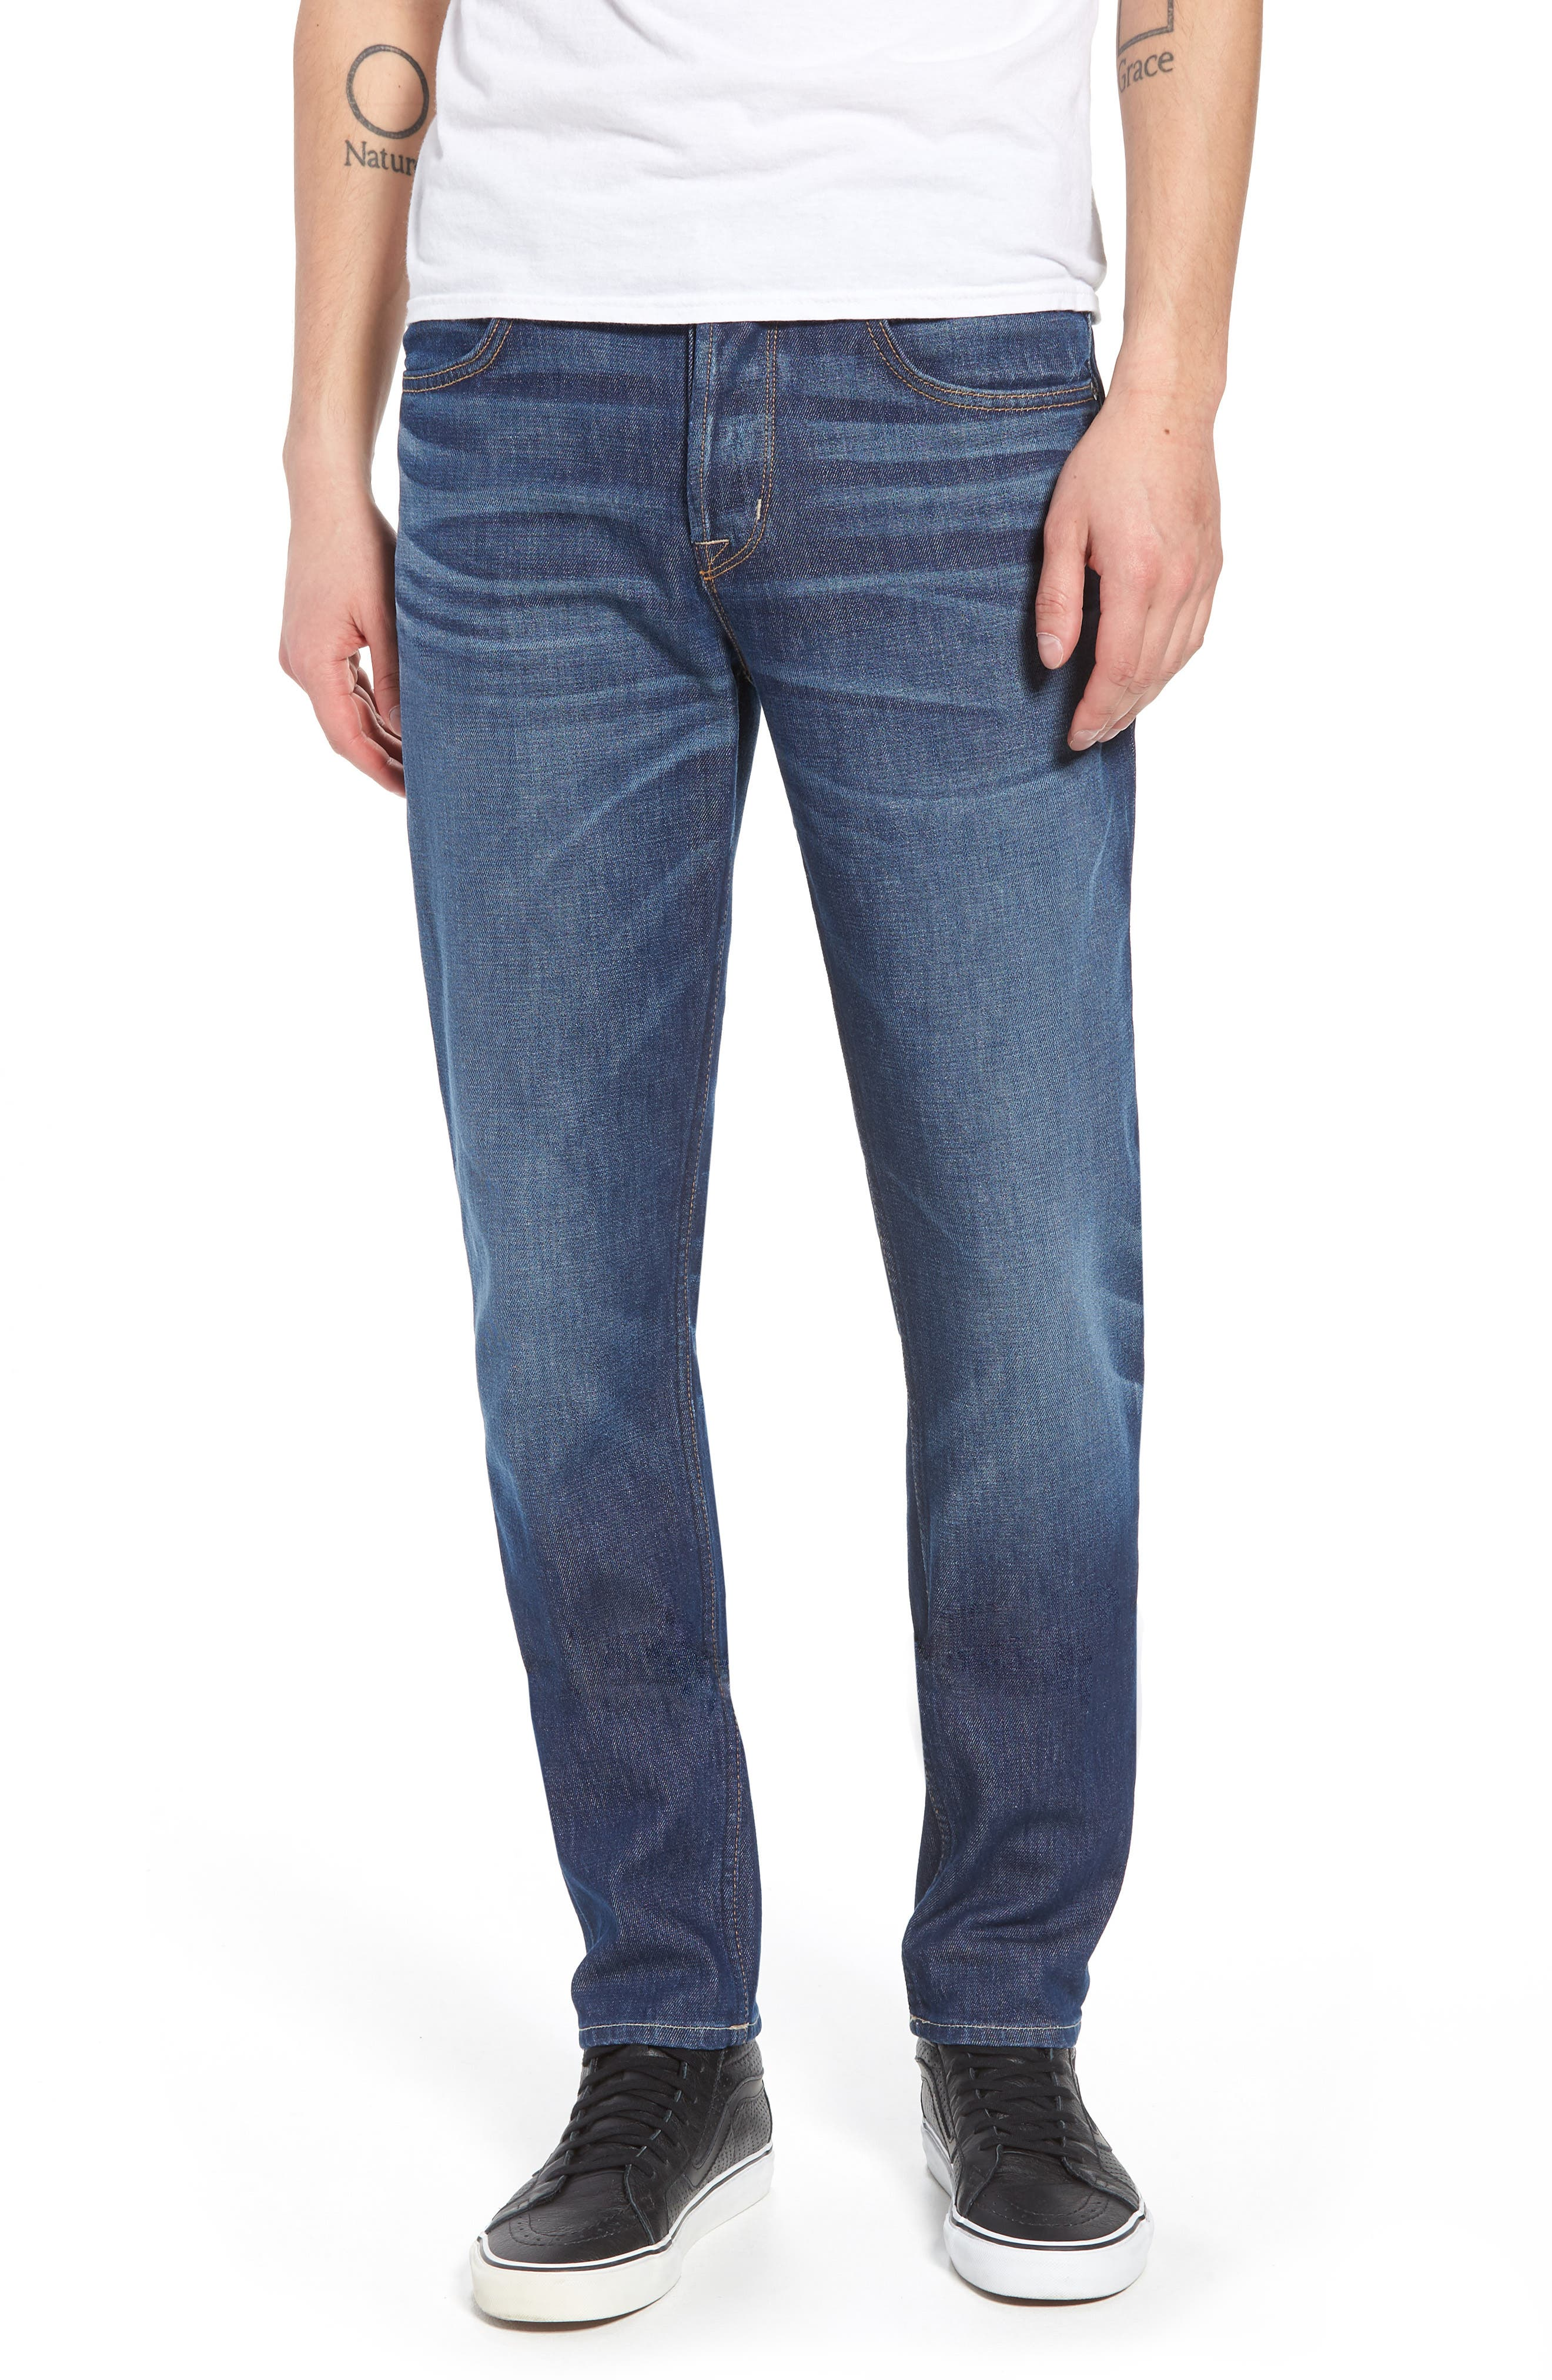 Axl Skinny Fit Jeans,                         Main,                         color, Ignites